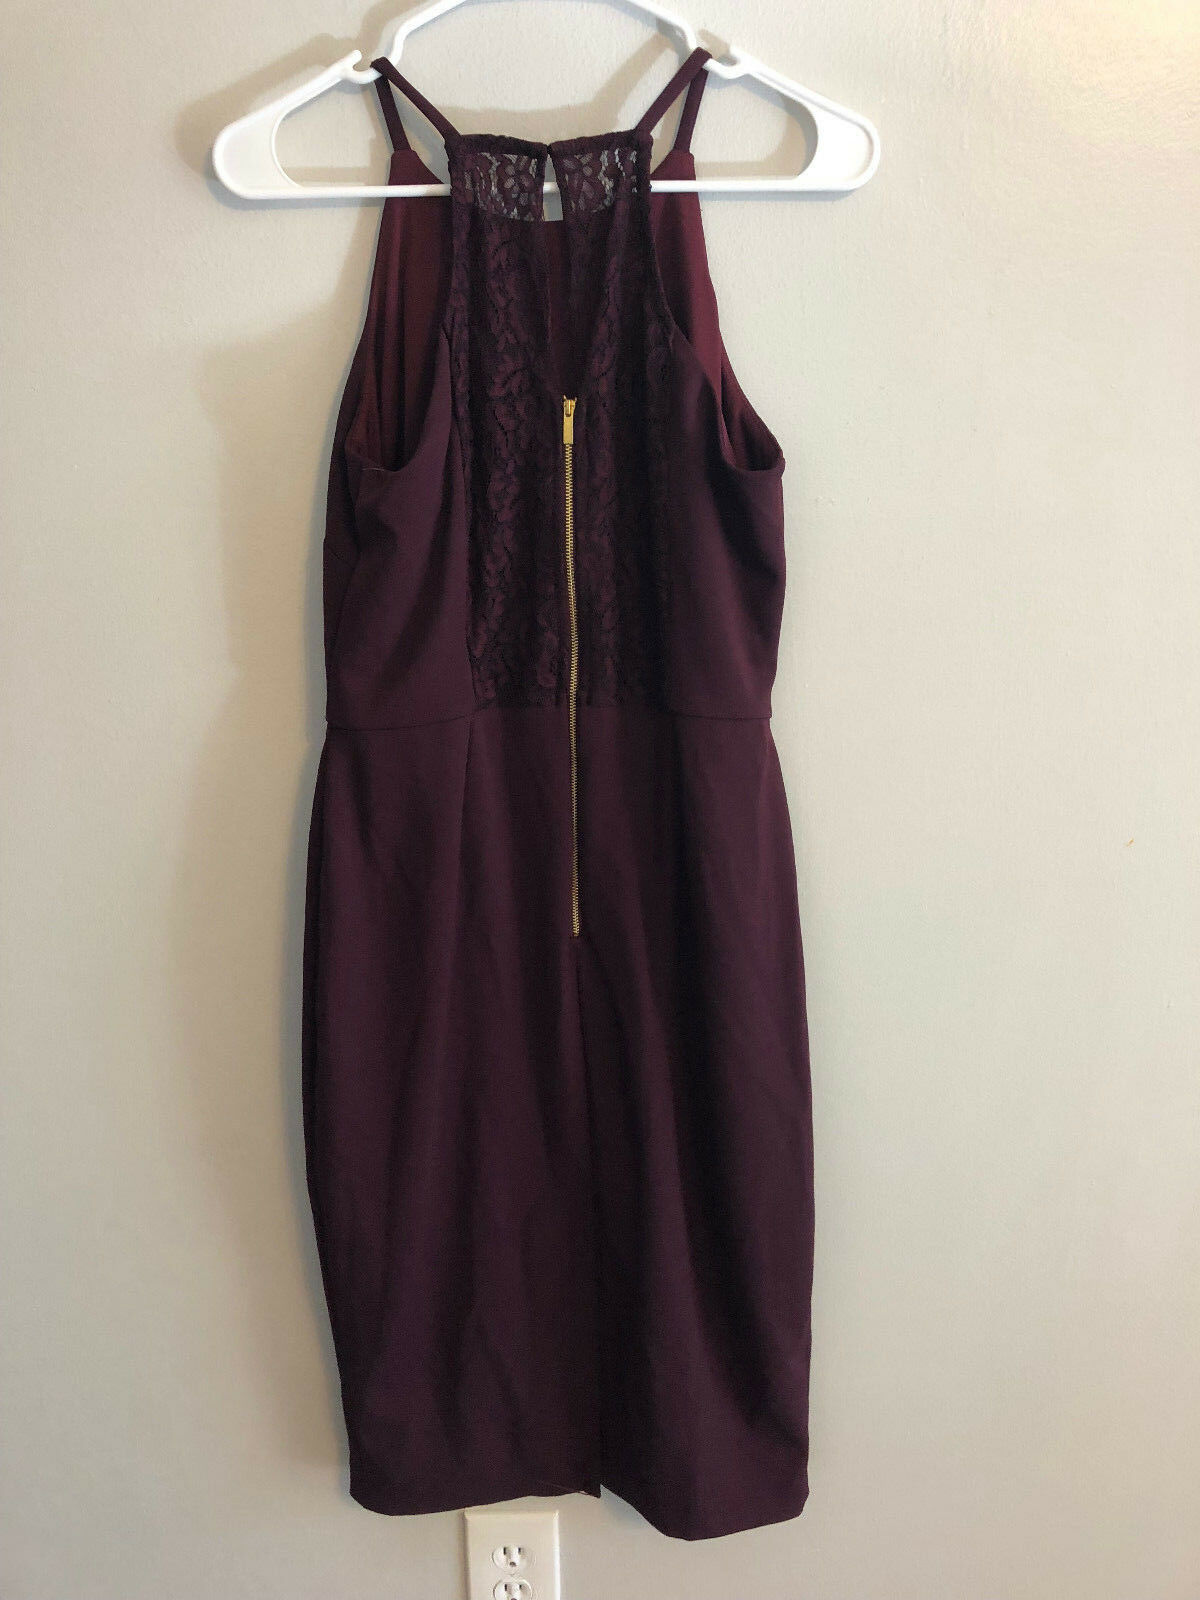 2a7afbf6bef55 Taylor Apron-Halter Sheath Dress Deep Red                            R10A2